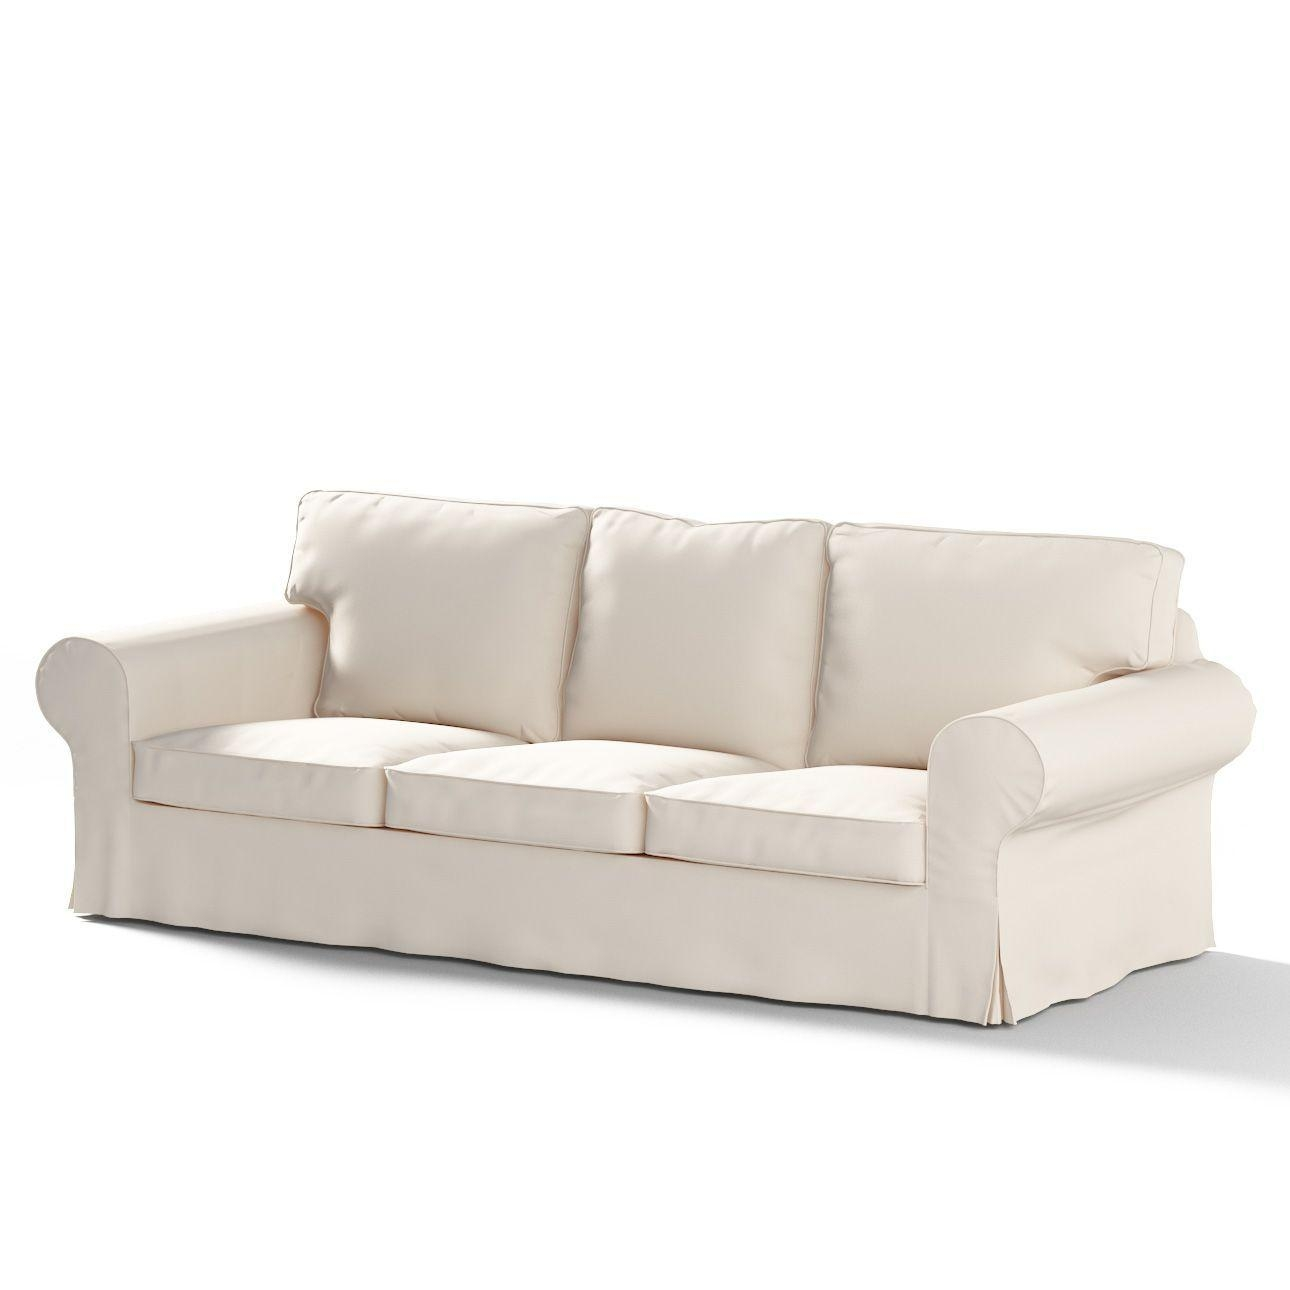 washing faux suede sofa covers futon bed for everyday use 20 inspirations with washable ideas